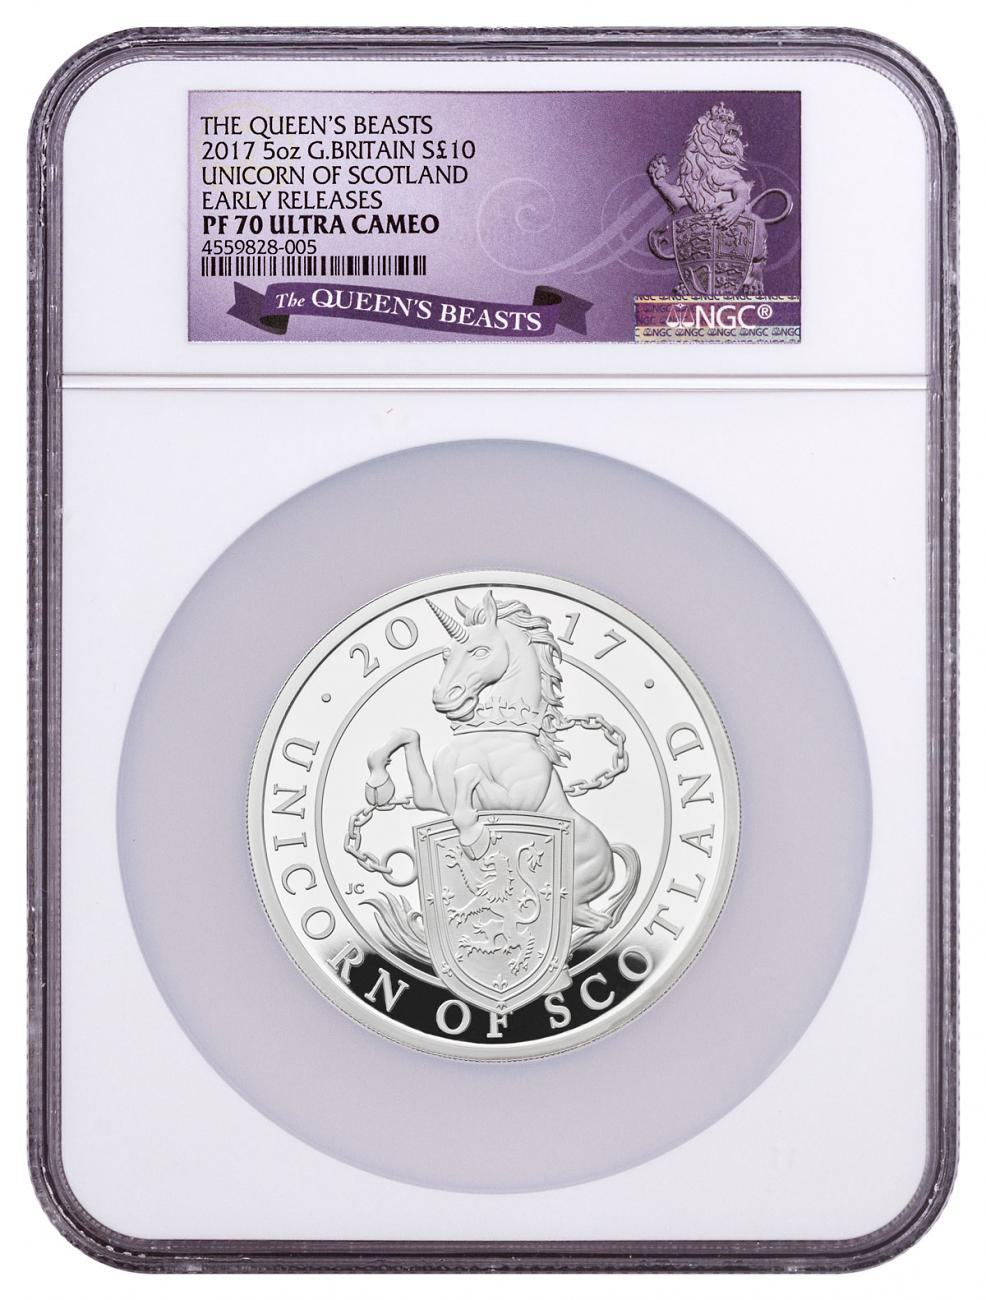 2017 Great Britain 5 oz Silver Queen's Beasts - Unicorn of Scotland Proof £10 Coin NGC PF70 UC ER Exclusive Queen